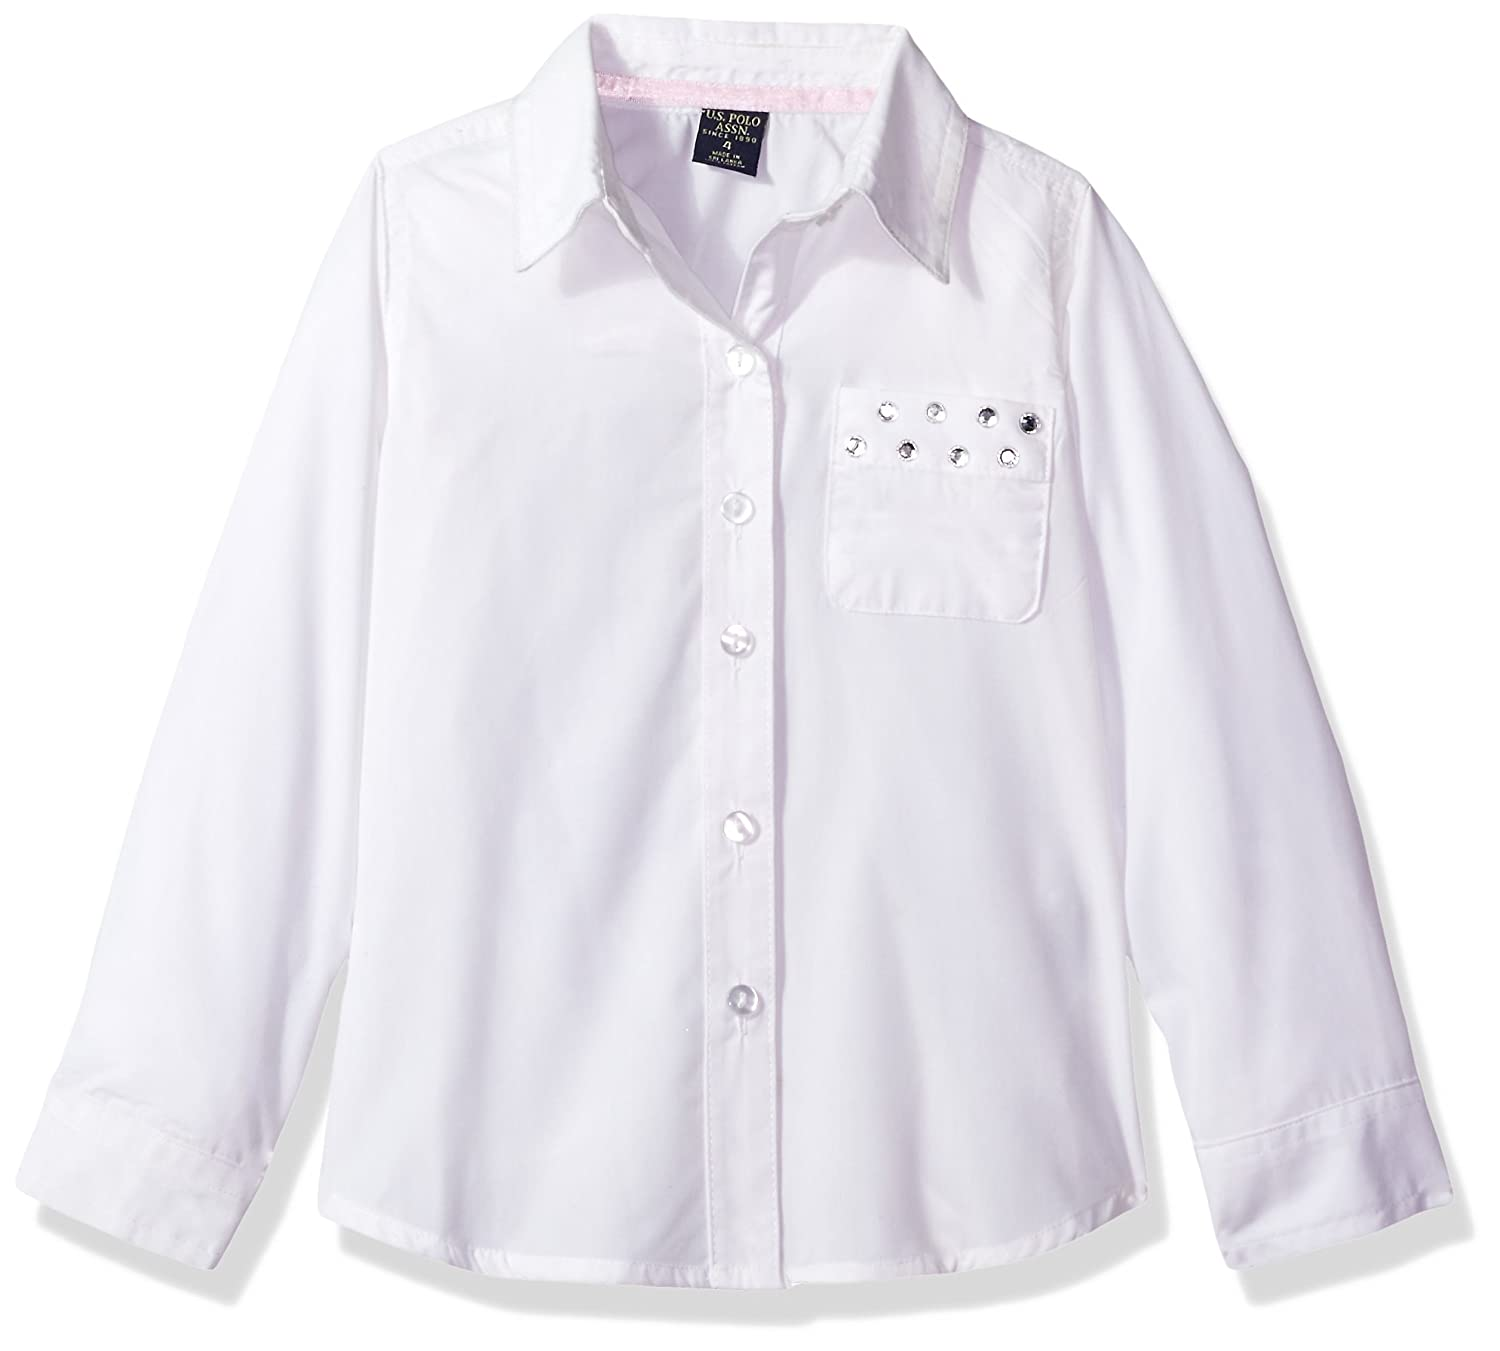 U.S. Polo Assn. Girls School Uniform Blouse HV68_1